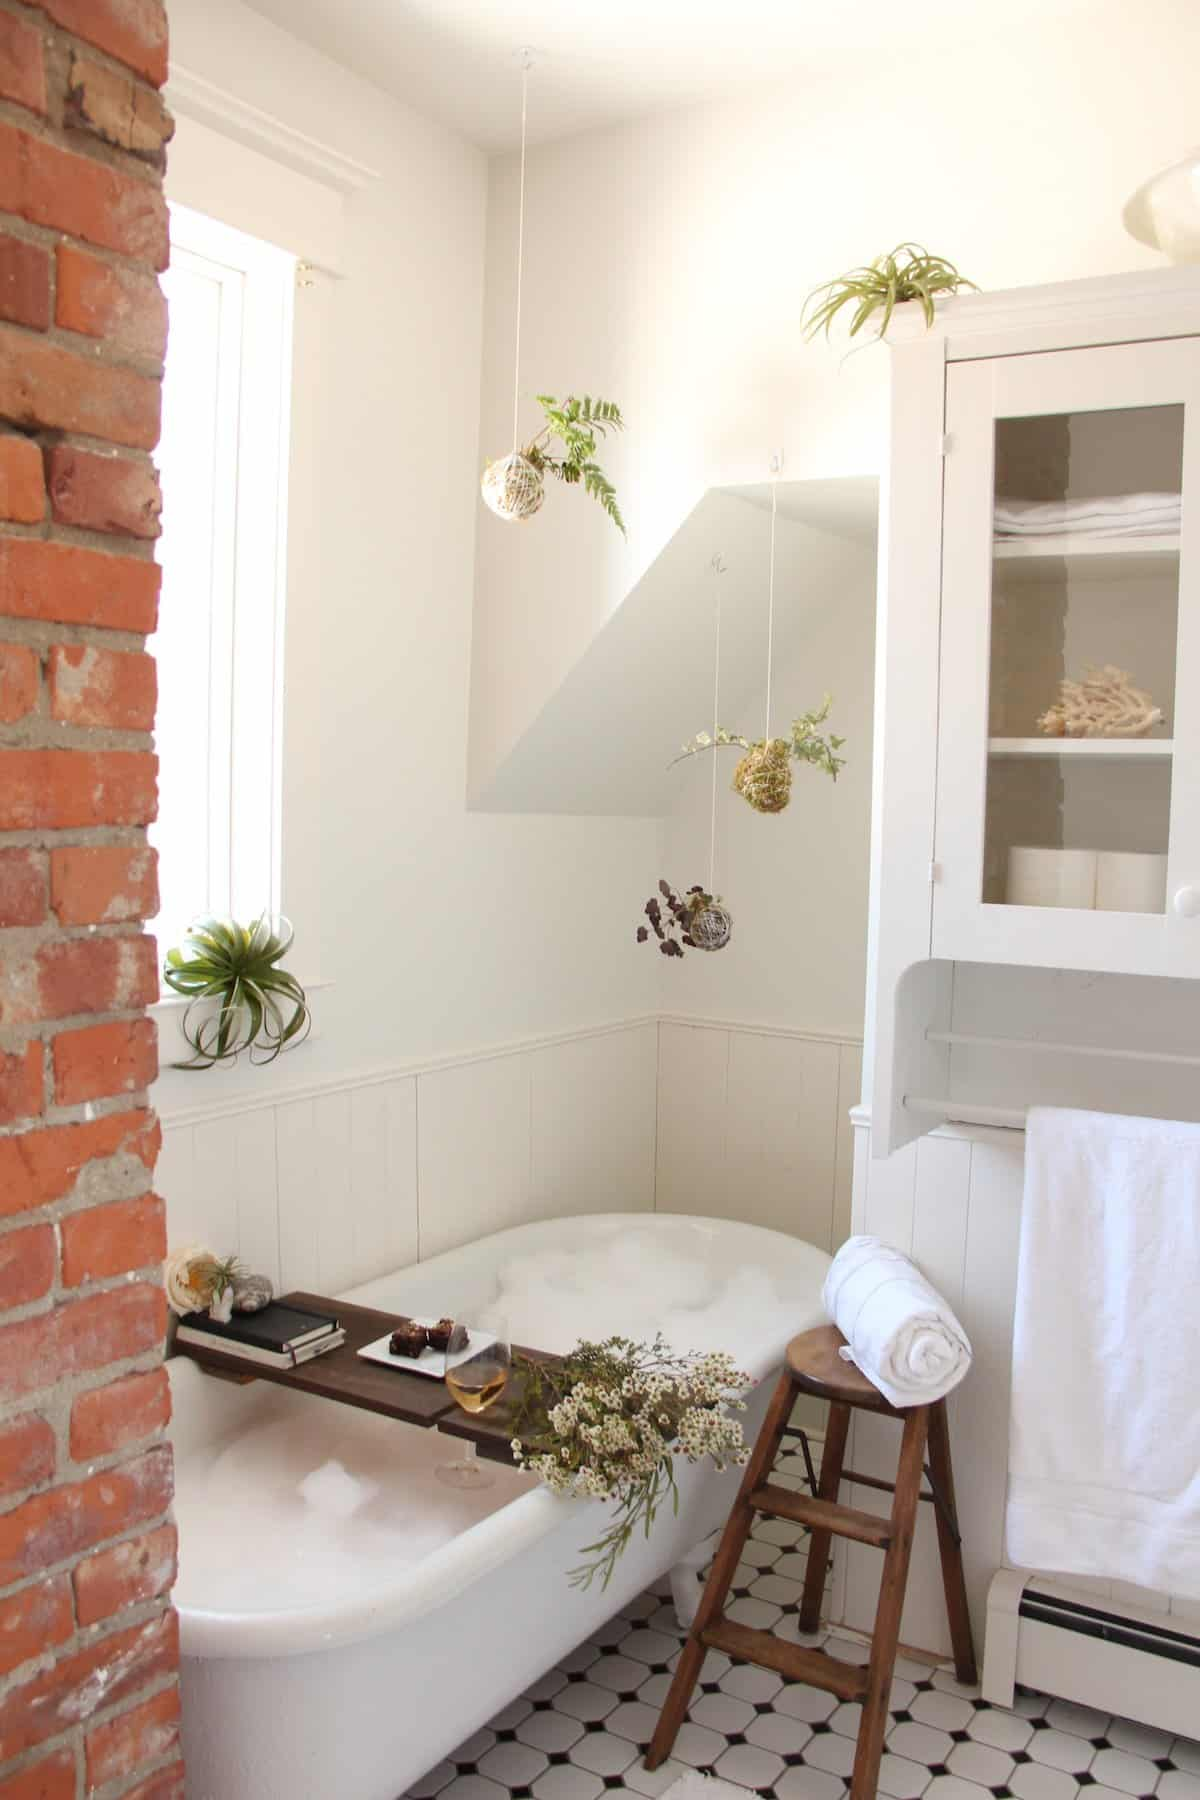 The Perfect Bubble Bath: How to Create a Relaxing Bath - Home for ...